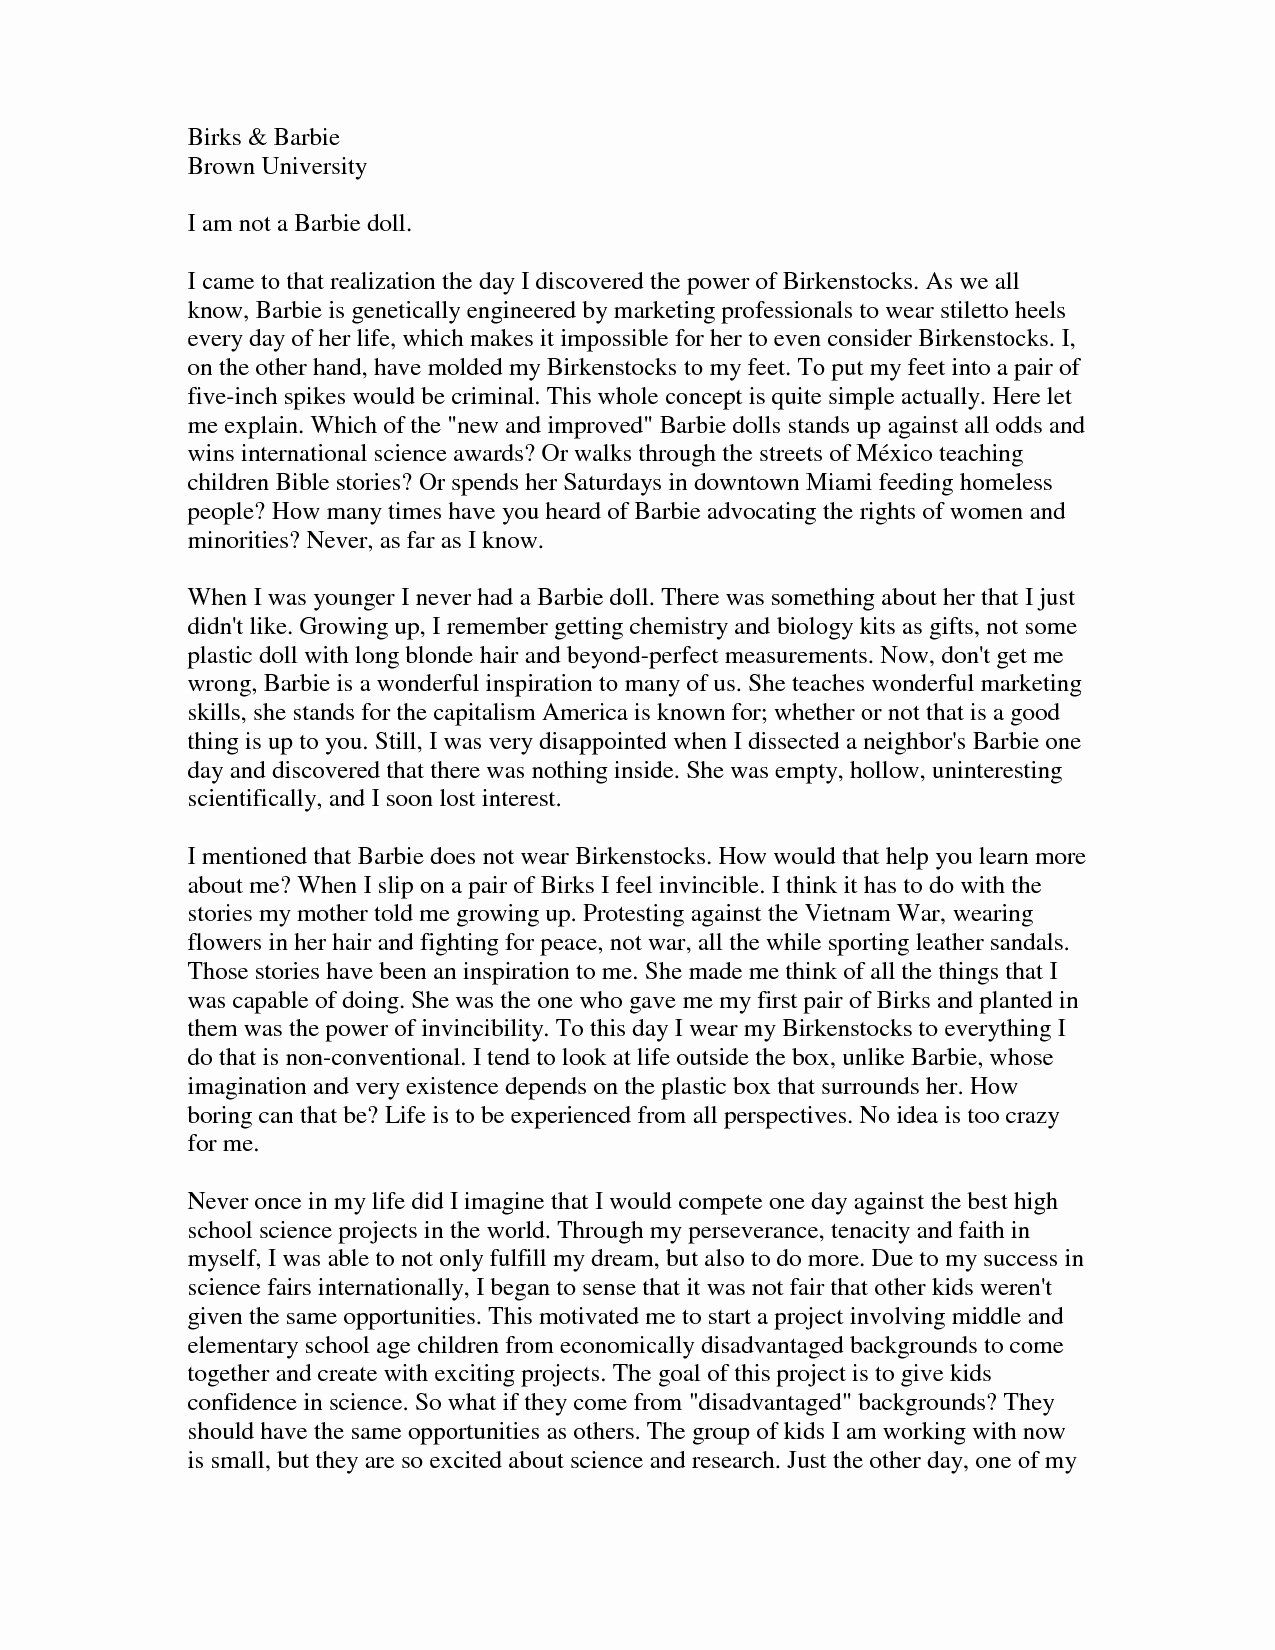 Full Size of College Application Essay Heading Format